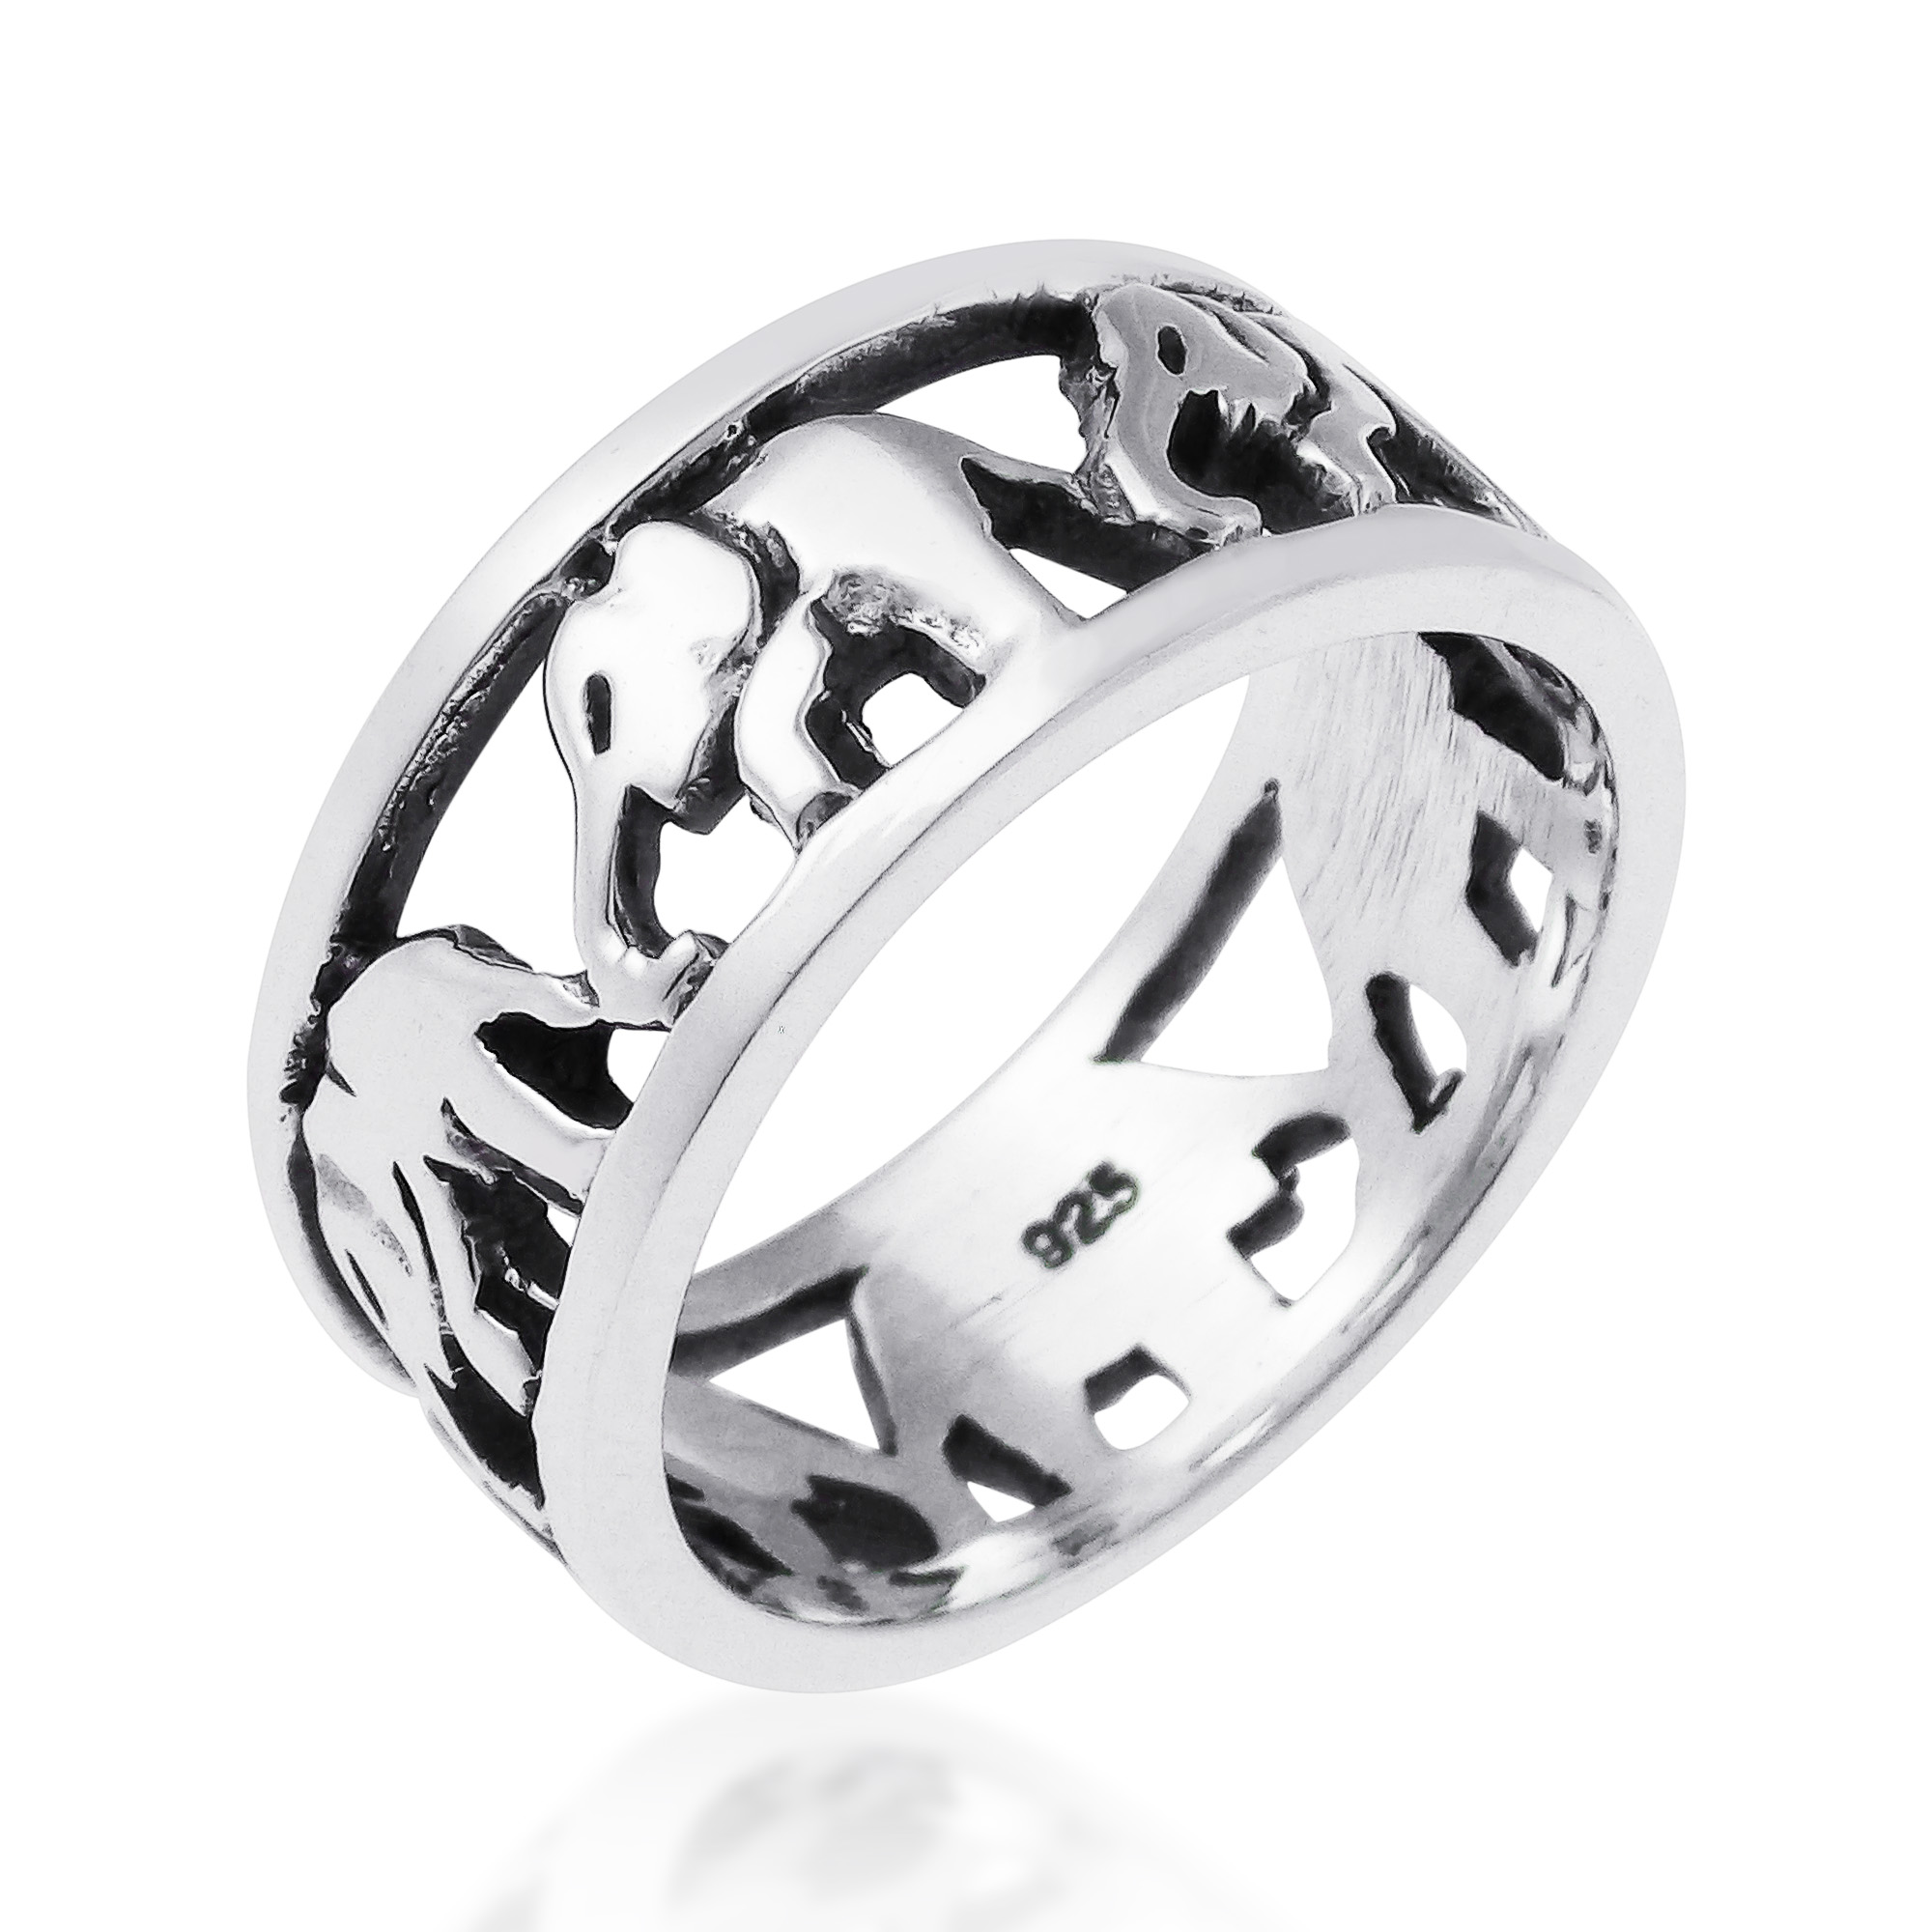 sterling silver gms inspired band ring wt spinner engagement elephant designer launch rings tjc